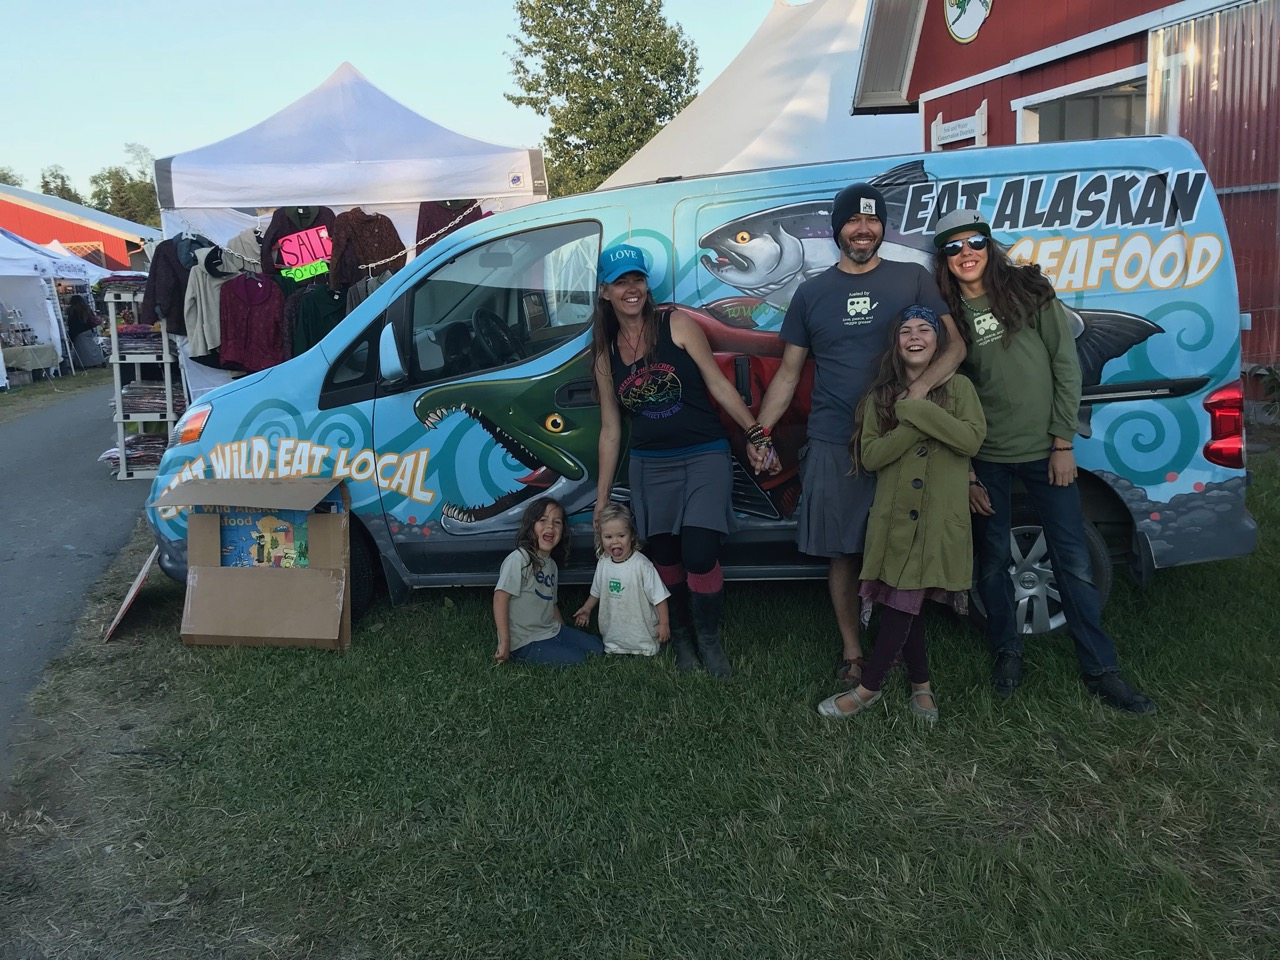 This was our first festival this year, and it reminded us why we love what we do. Thanks Salmonfest!